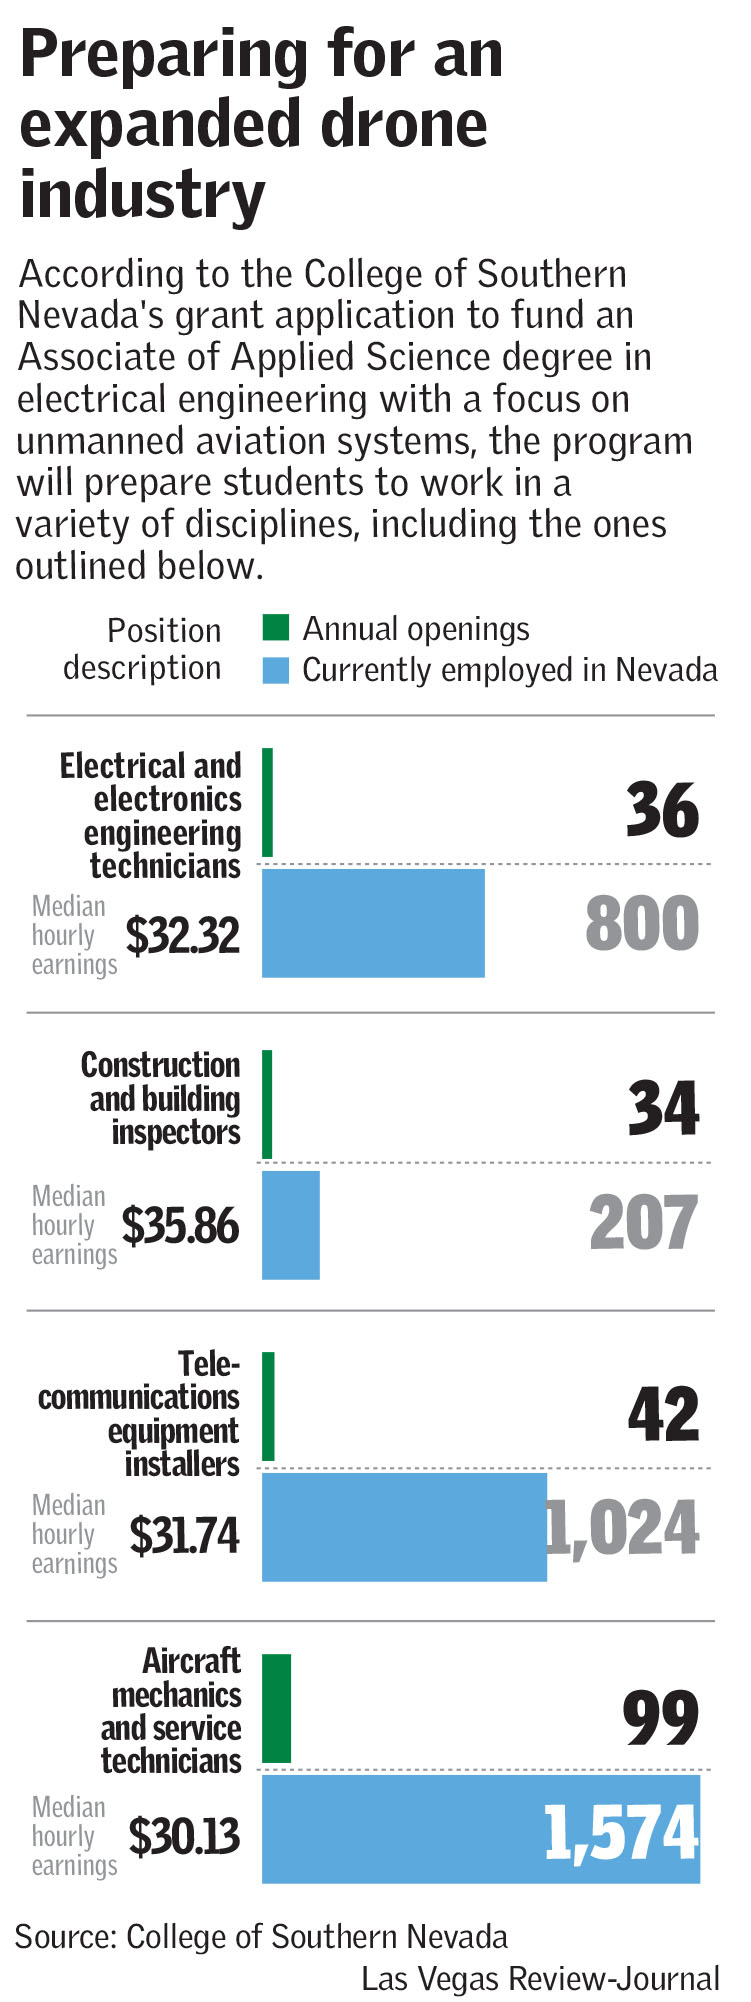 Drone industry expanding (Las Vegas Review-Journal)